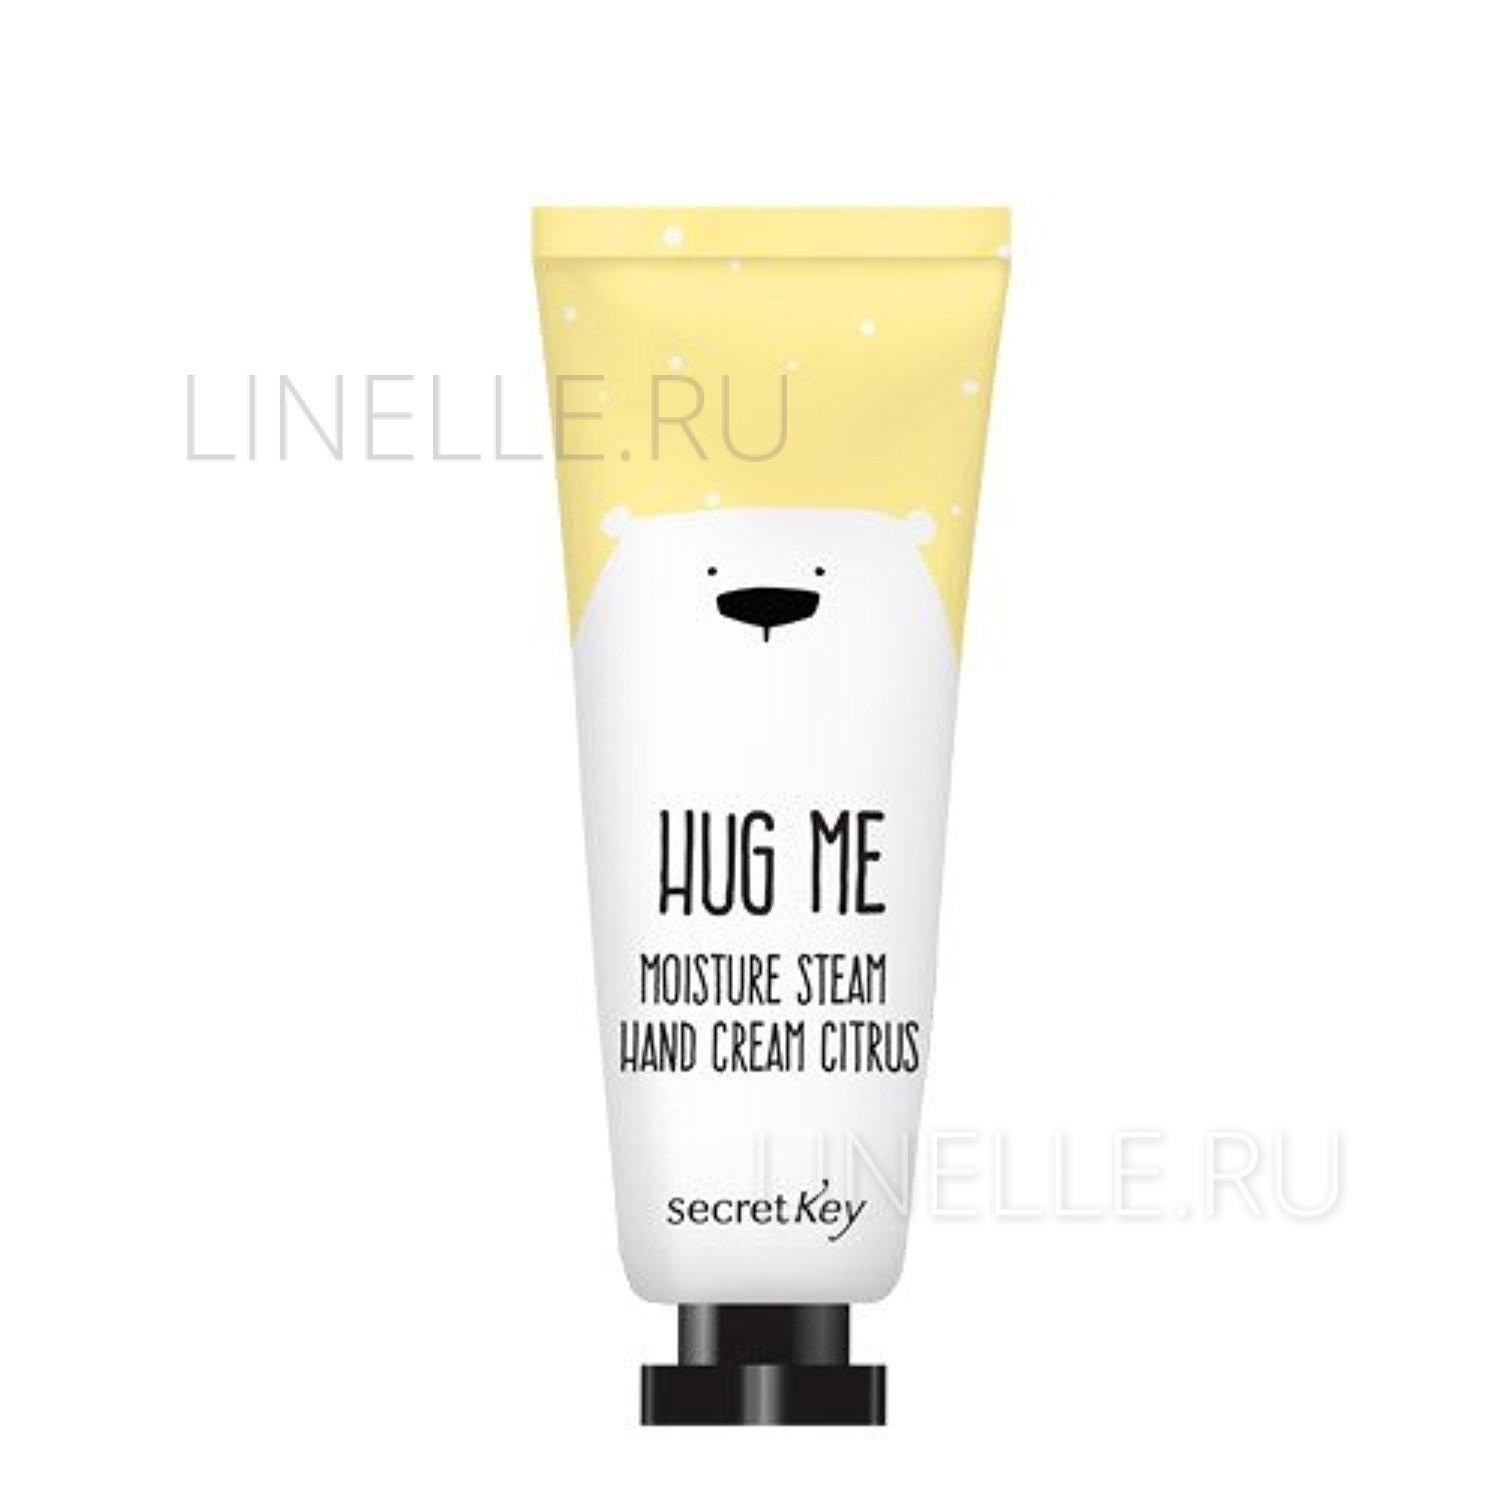 SECRET KEY Hug me moisture steam hand cream citrus